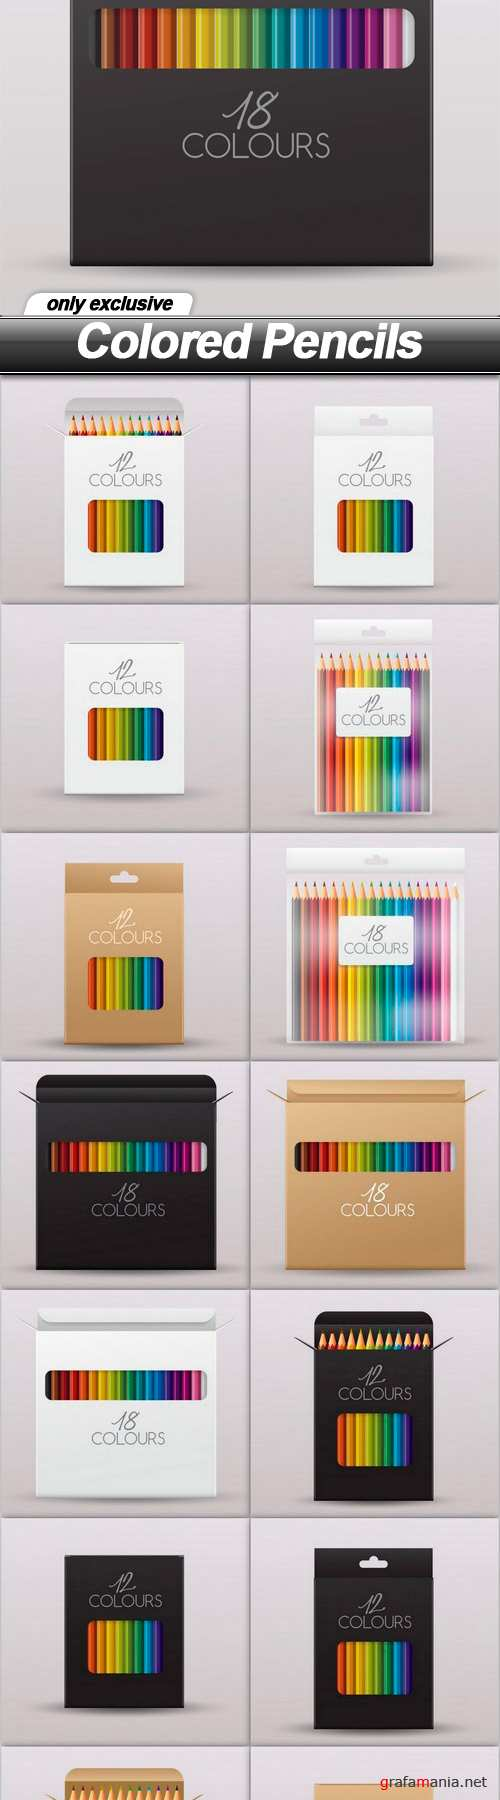 Colored Pencils - 14 EPS